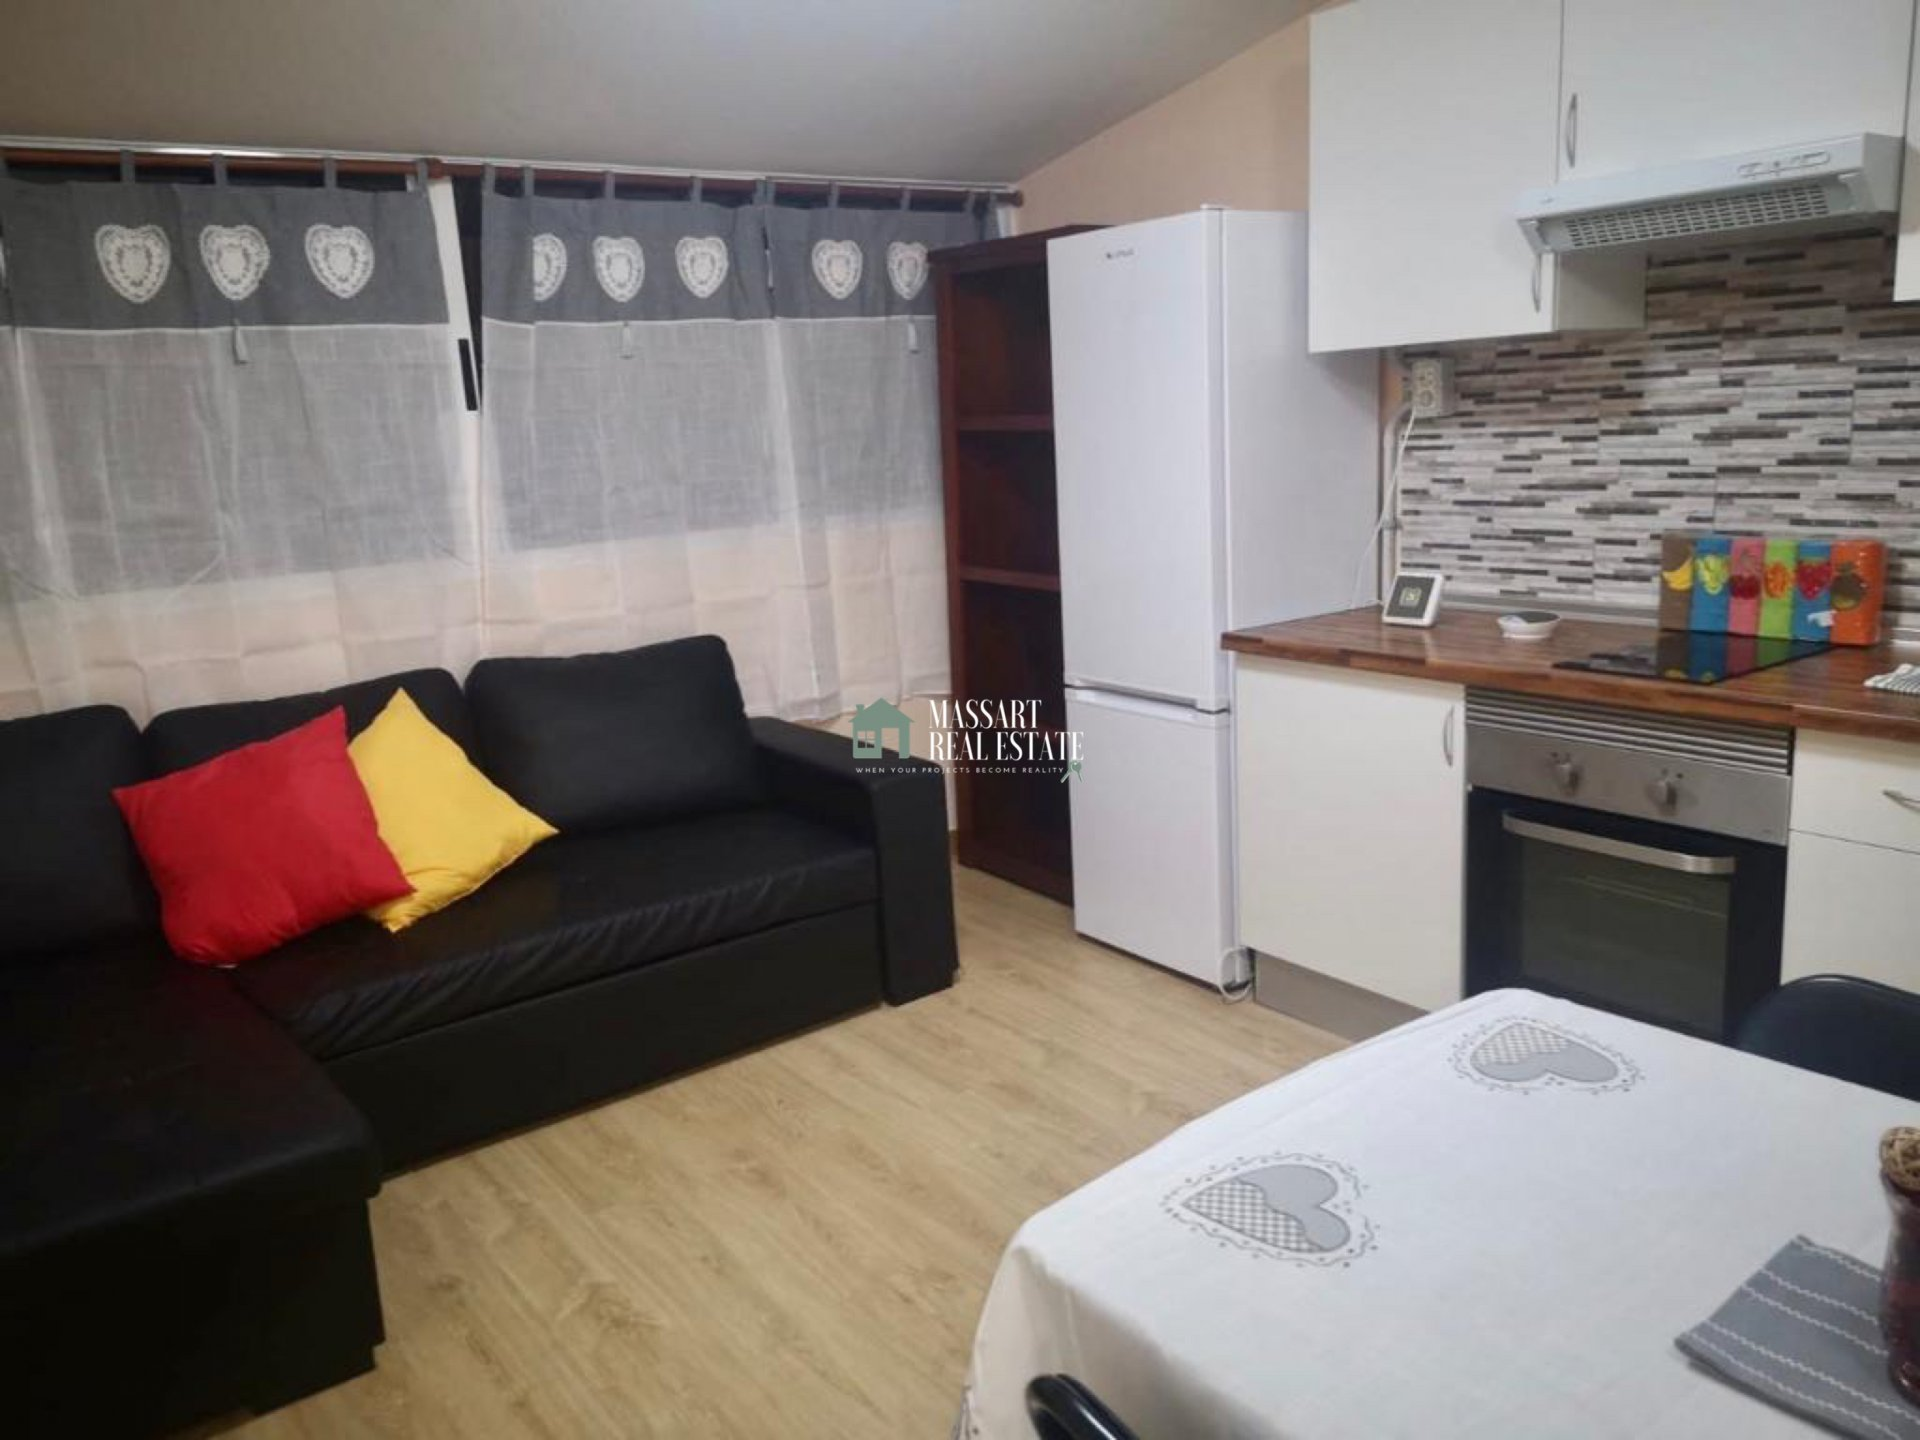 Fully furnished 60 m2 apartment located in a central area of San Isidro, characterized by its cozy style.